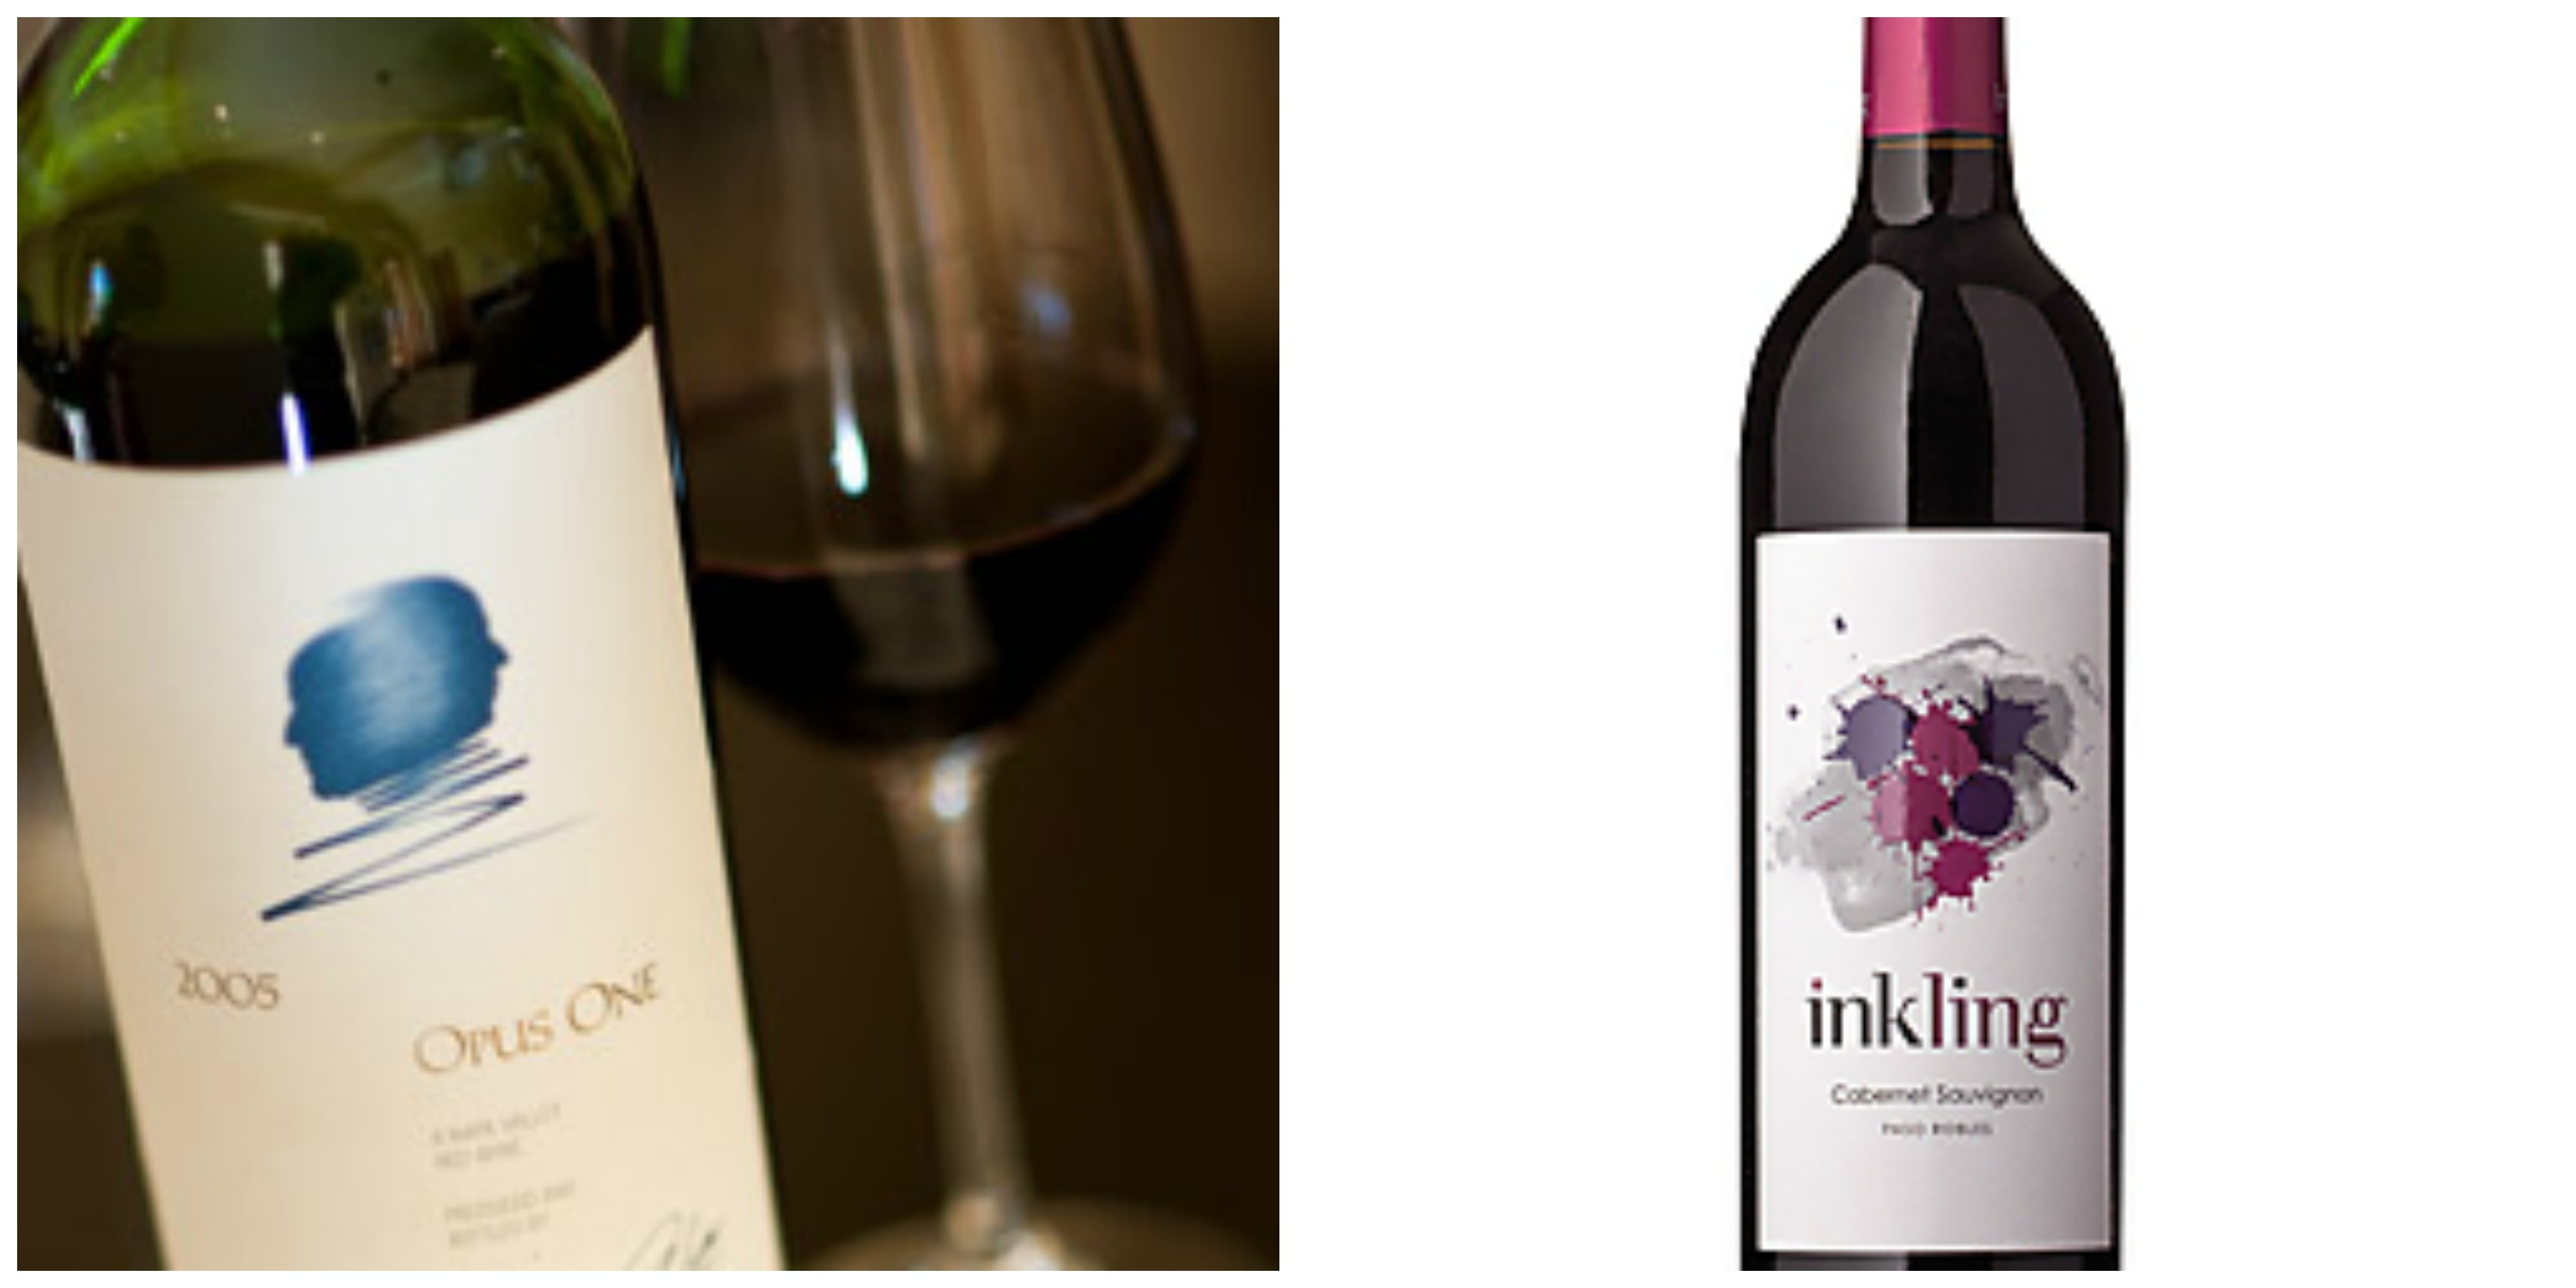 The famed Opus One...which I plan to try this summer. I have a hunch that Inkling Cabernet is easy drinking. (left image © Opus On Winery; right image courtesy Total Wine & More)